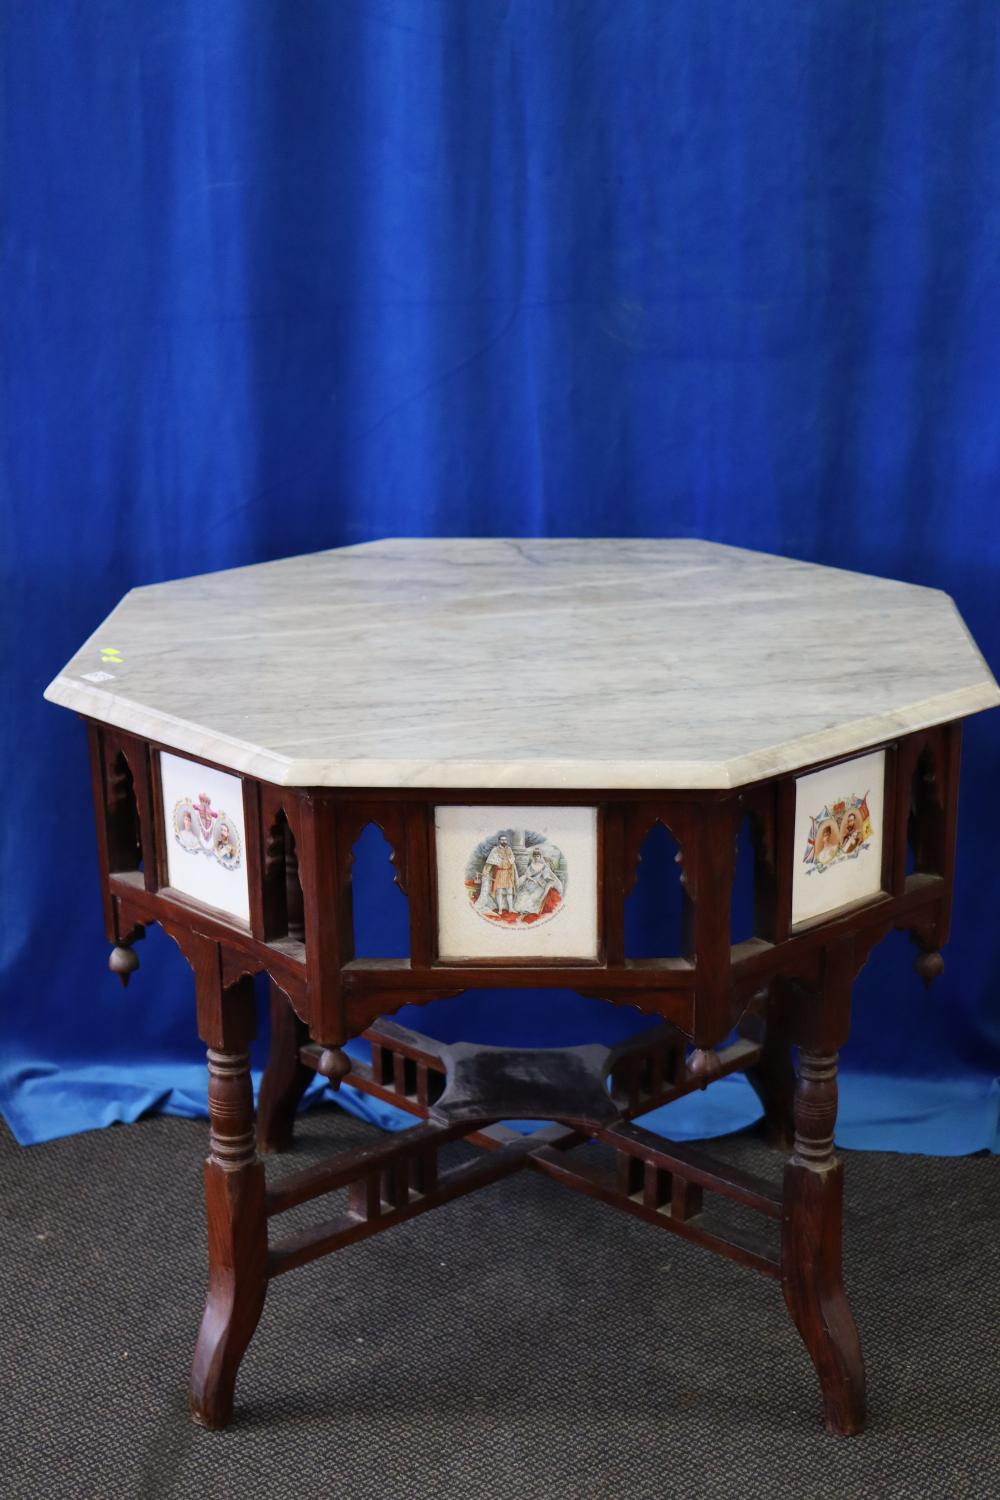 EDWARDIAN HEXAGONAL SHAPED OCCASIONAL TABLE WITH ROYAL TILE INSERTS AND MARBLE TOP